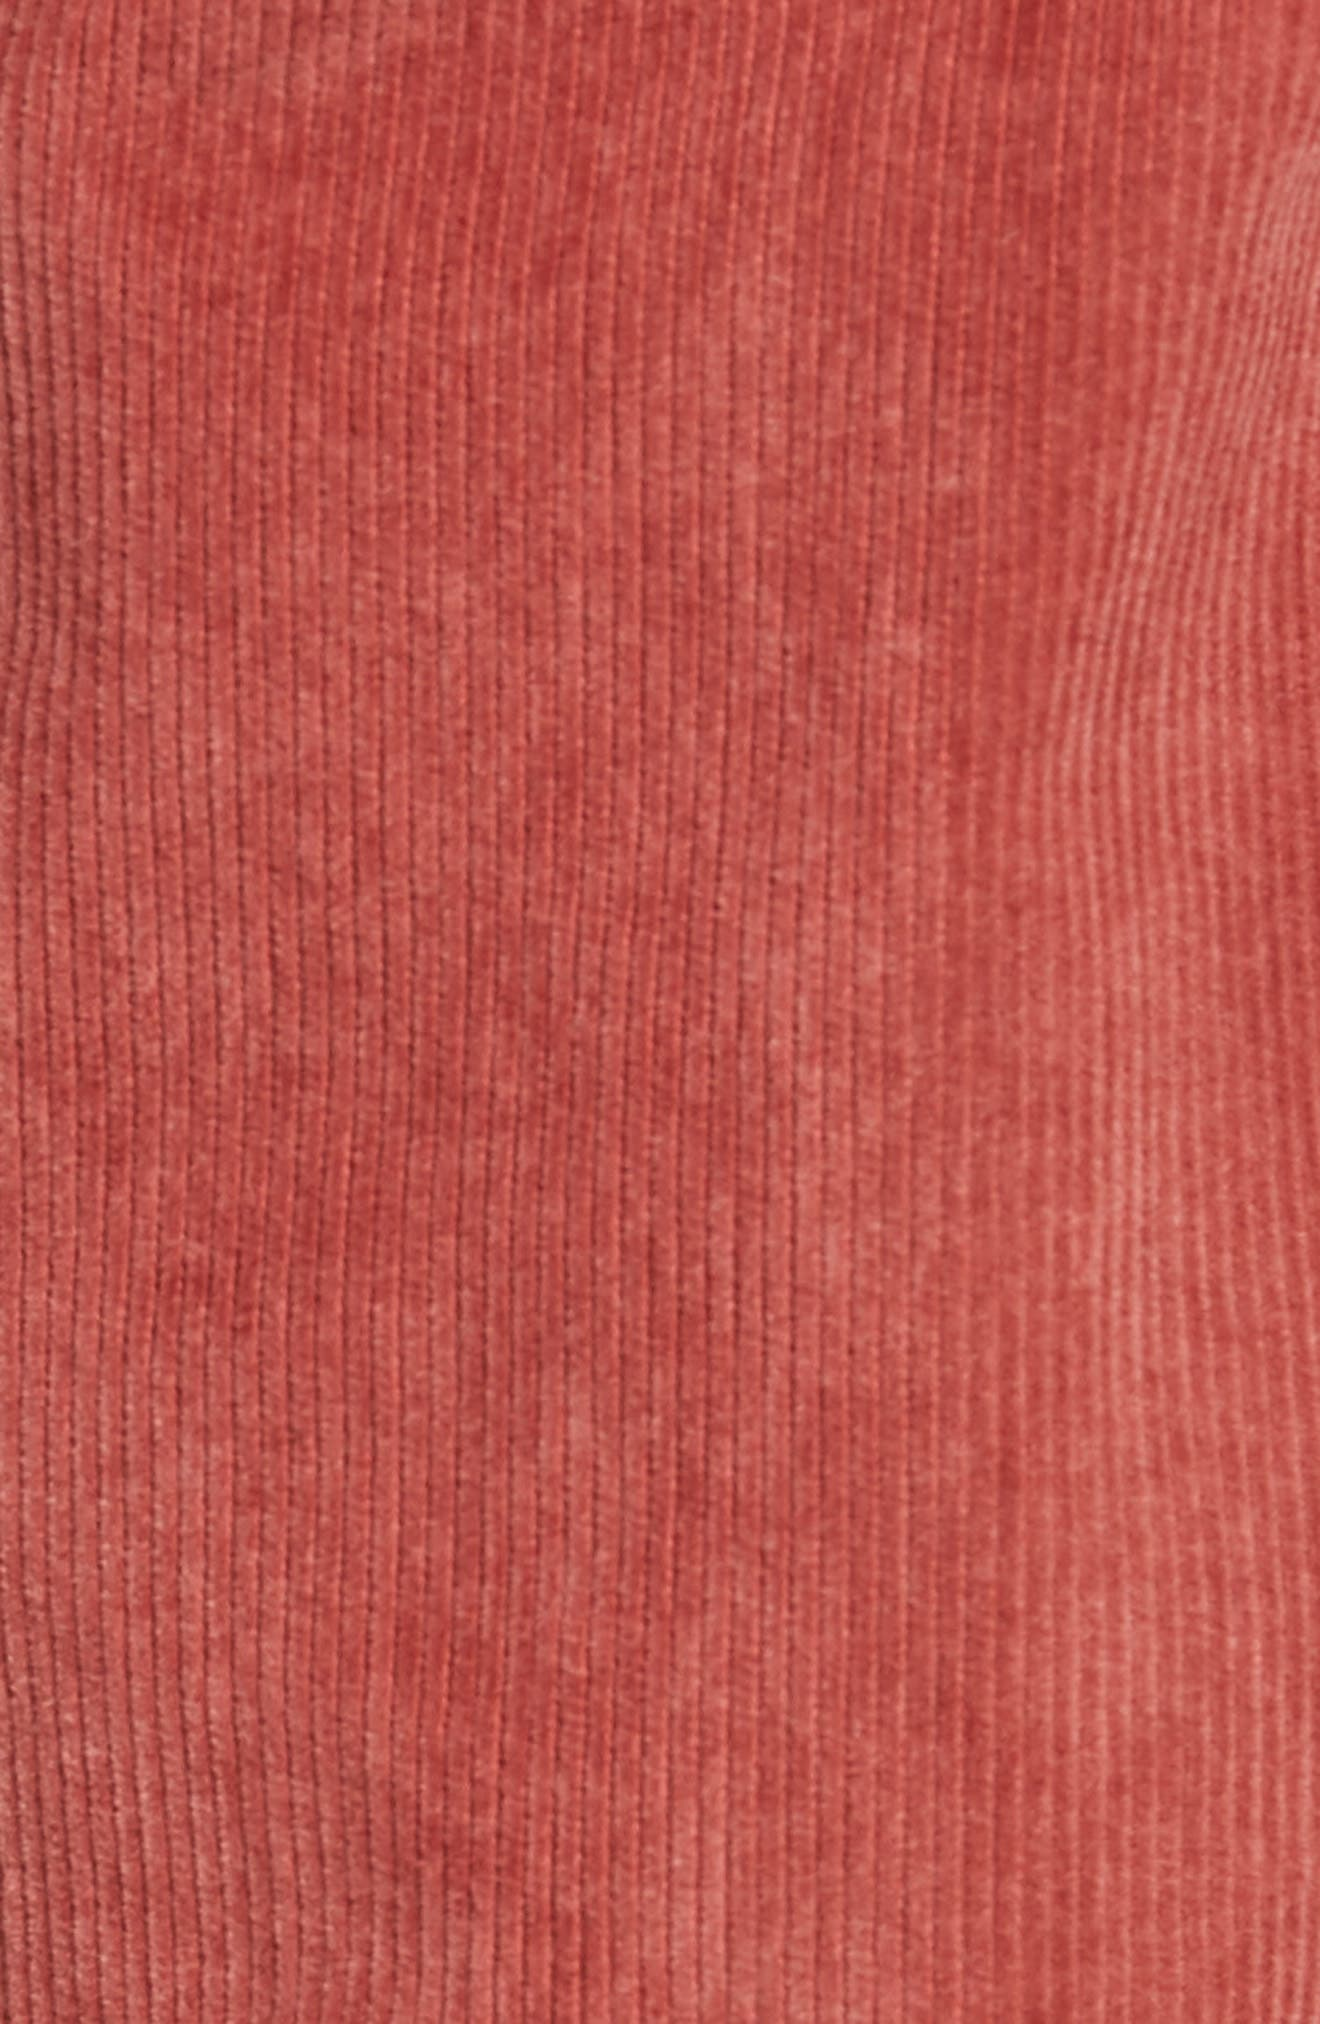 511<sup>™</sup> Slim Fit Corduroy Pants,                             Alternate thumbnail 5, color,                             RALLY RED